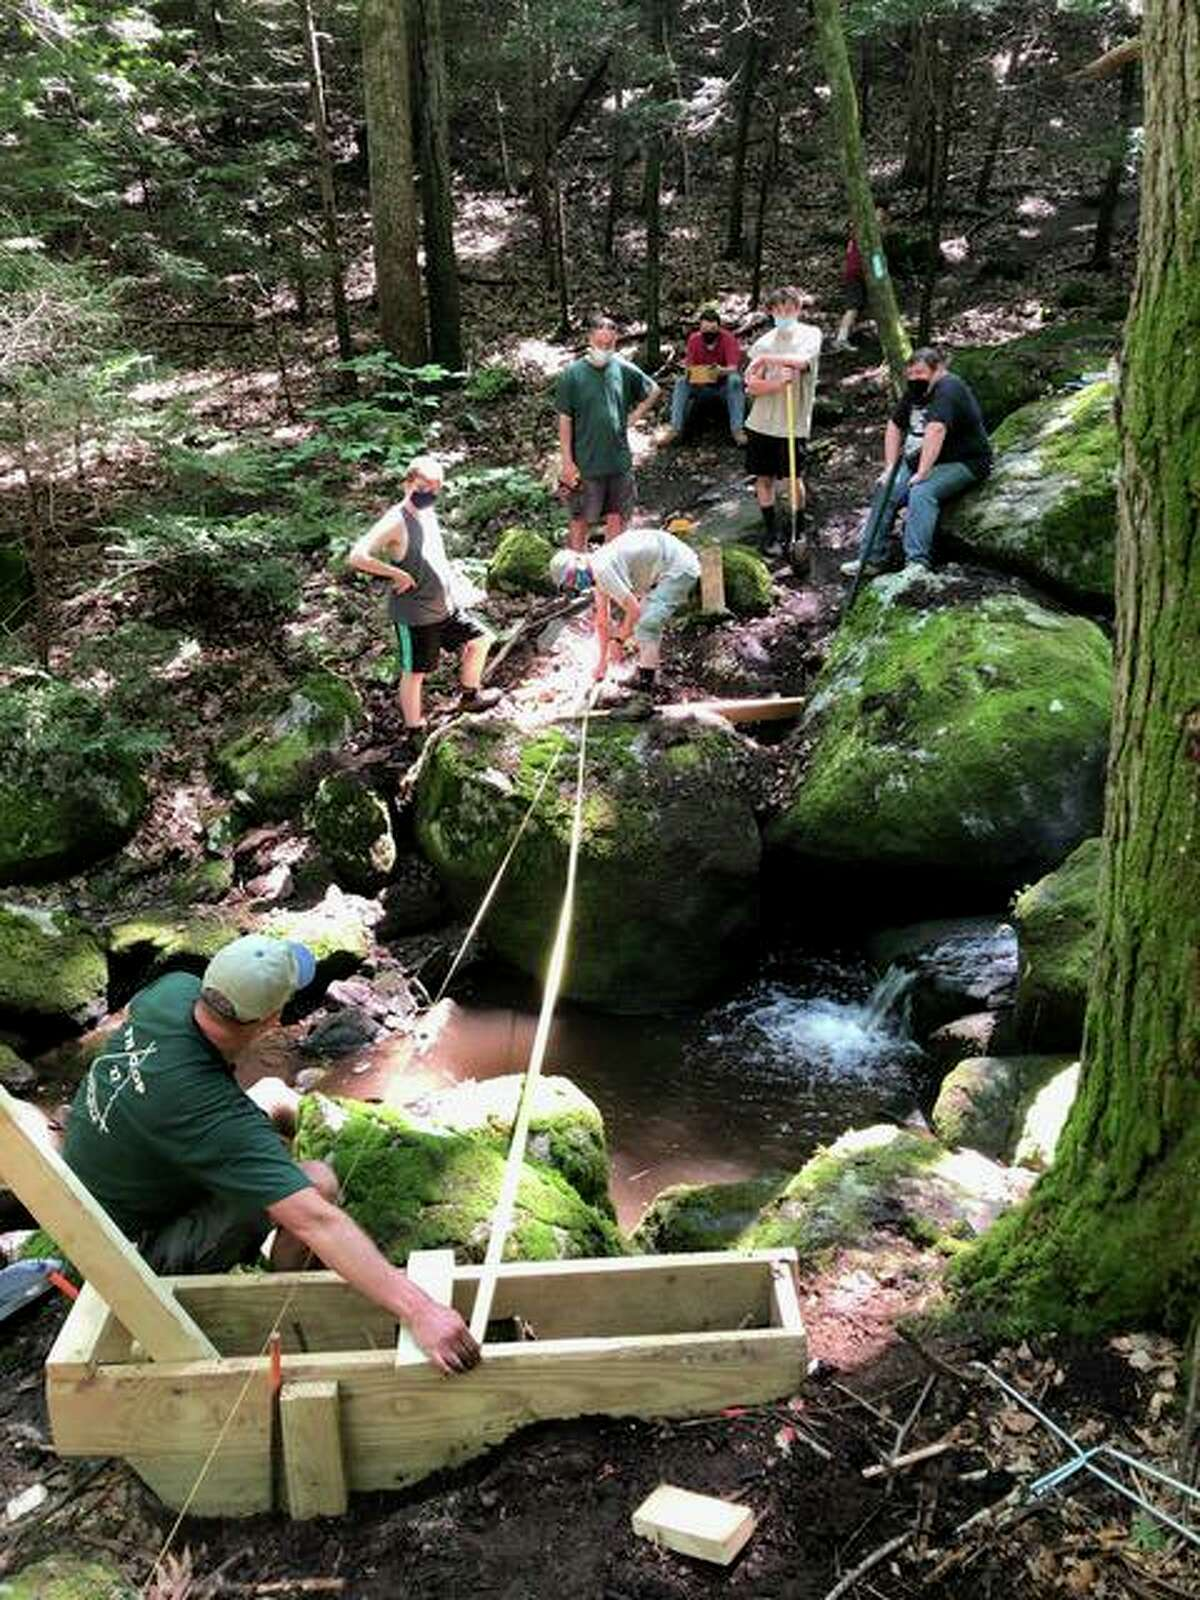 Korey Barber, a Boy Scout with the Housatonic Troop 27 Life Scout and a rising senior at Shelton High School, is organizing construction of a bridge crossing Round Hill Brook on the Paugussett trail. Above, Barber and other volunteers work on creating the bridge.